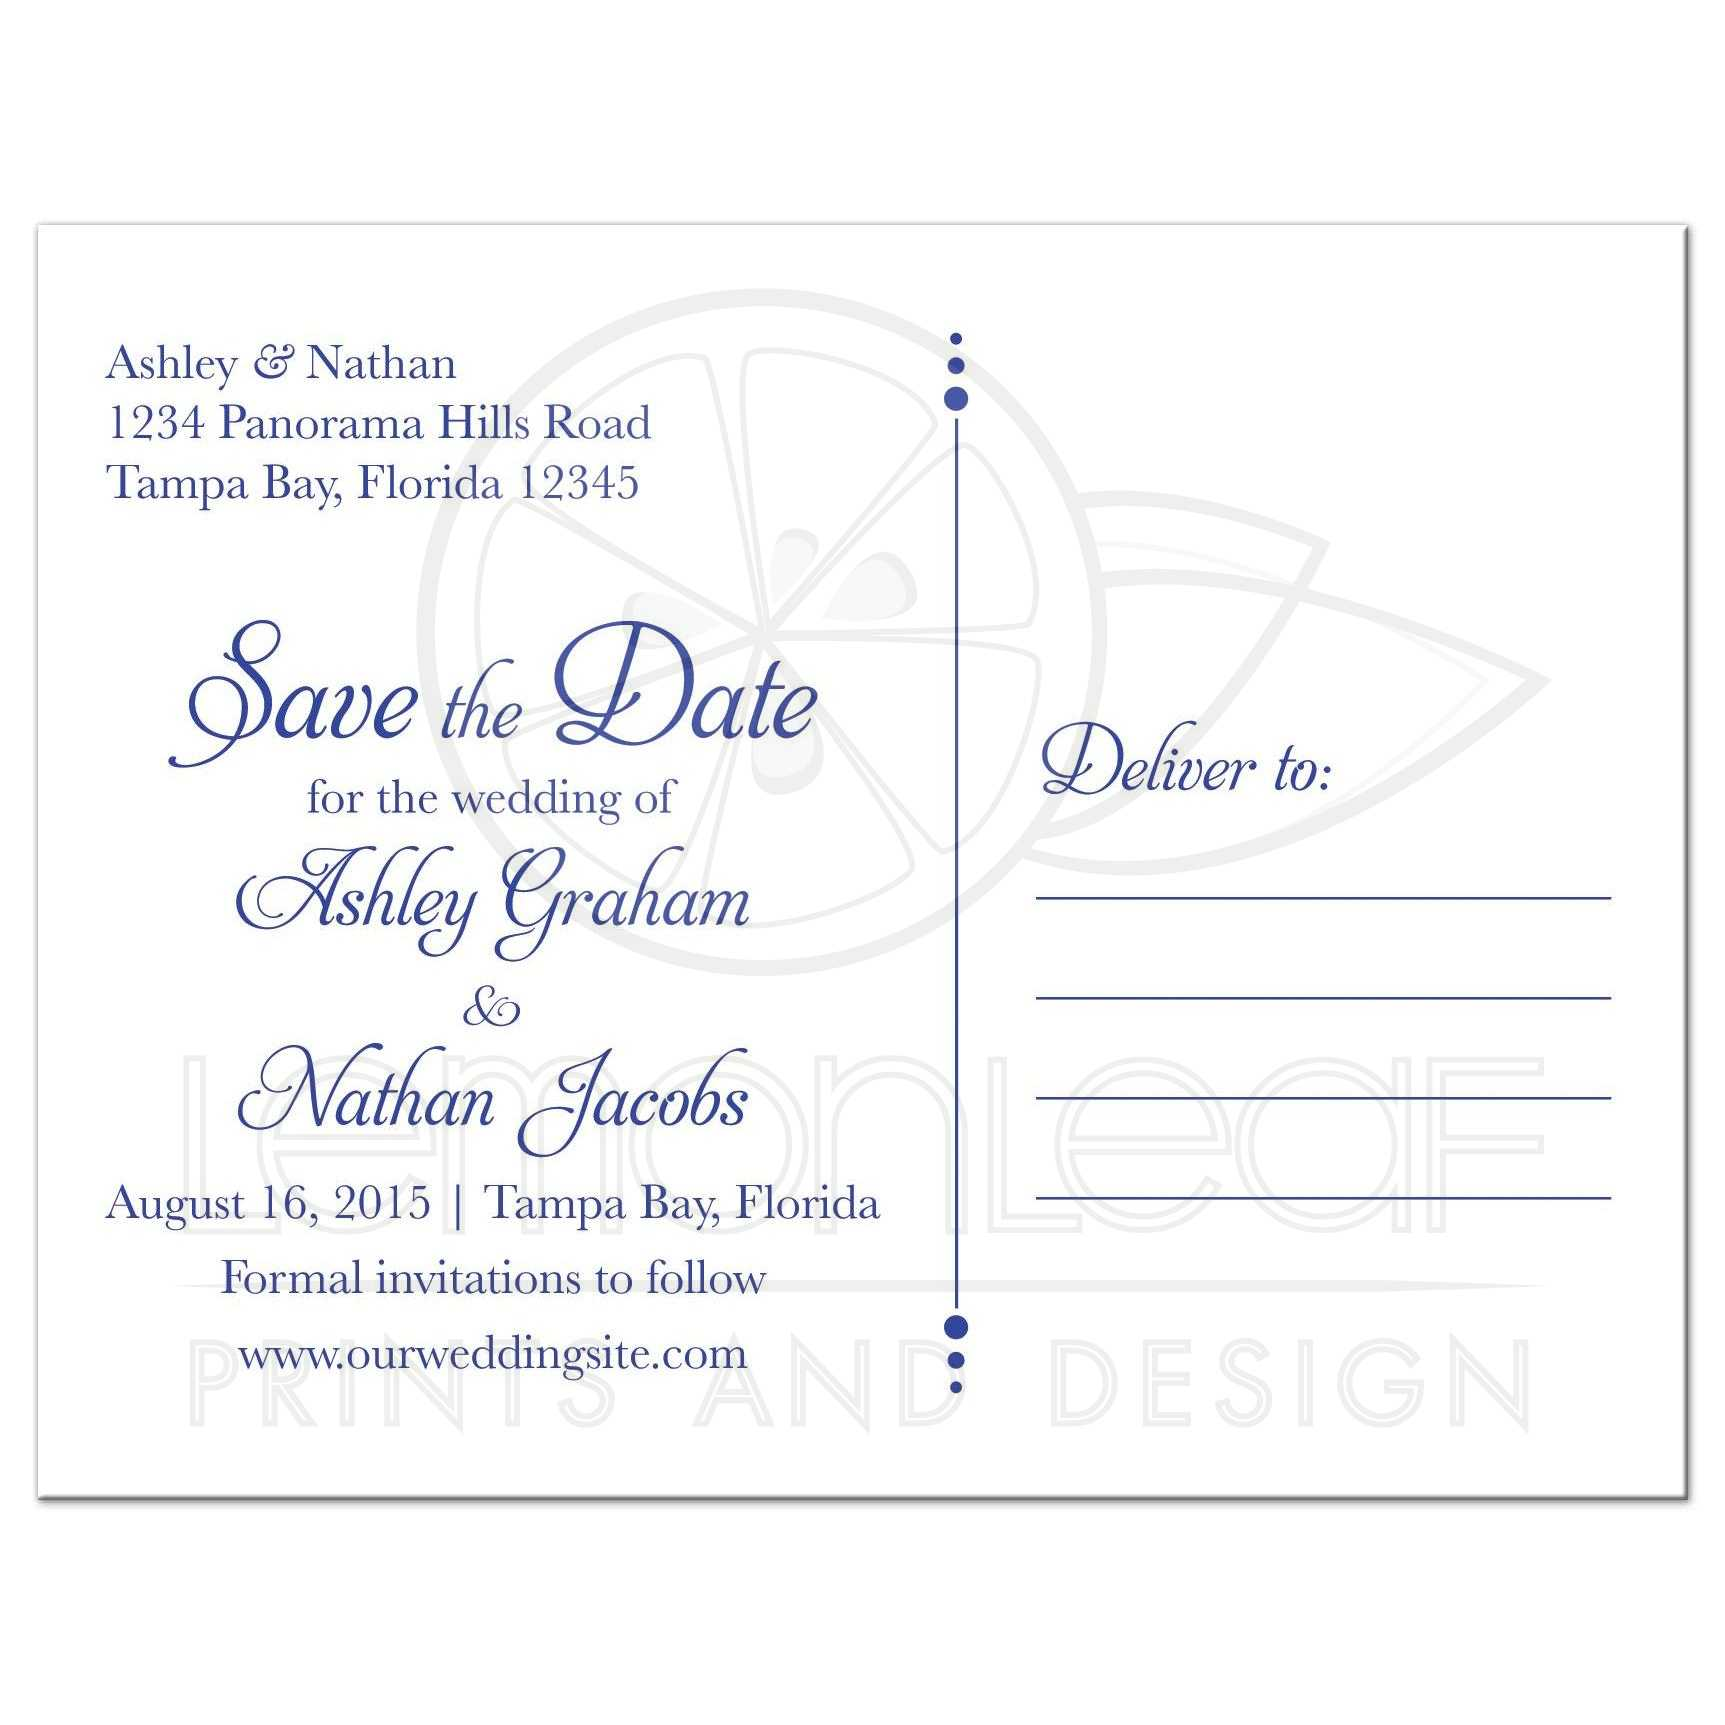 Wedding Save the Date Postcard Sunflower Royal Blue Damask – Wedding Save the Date Postcards